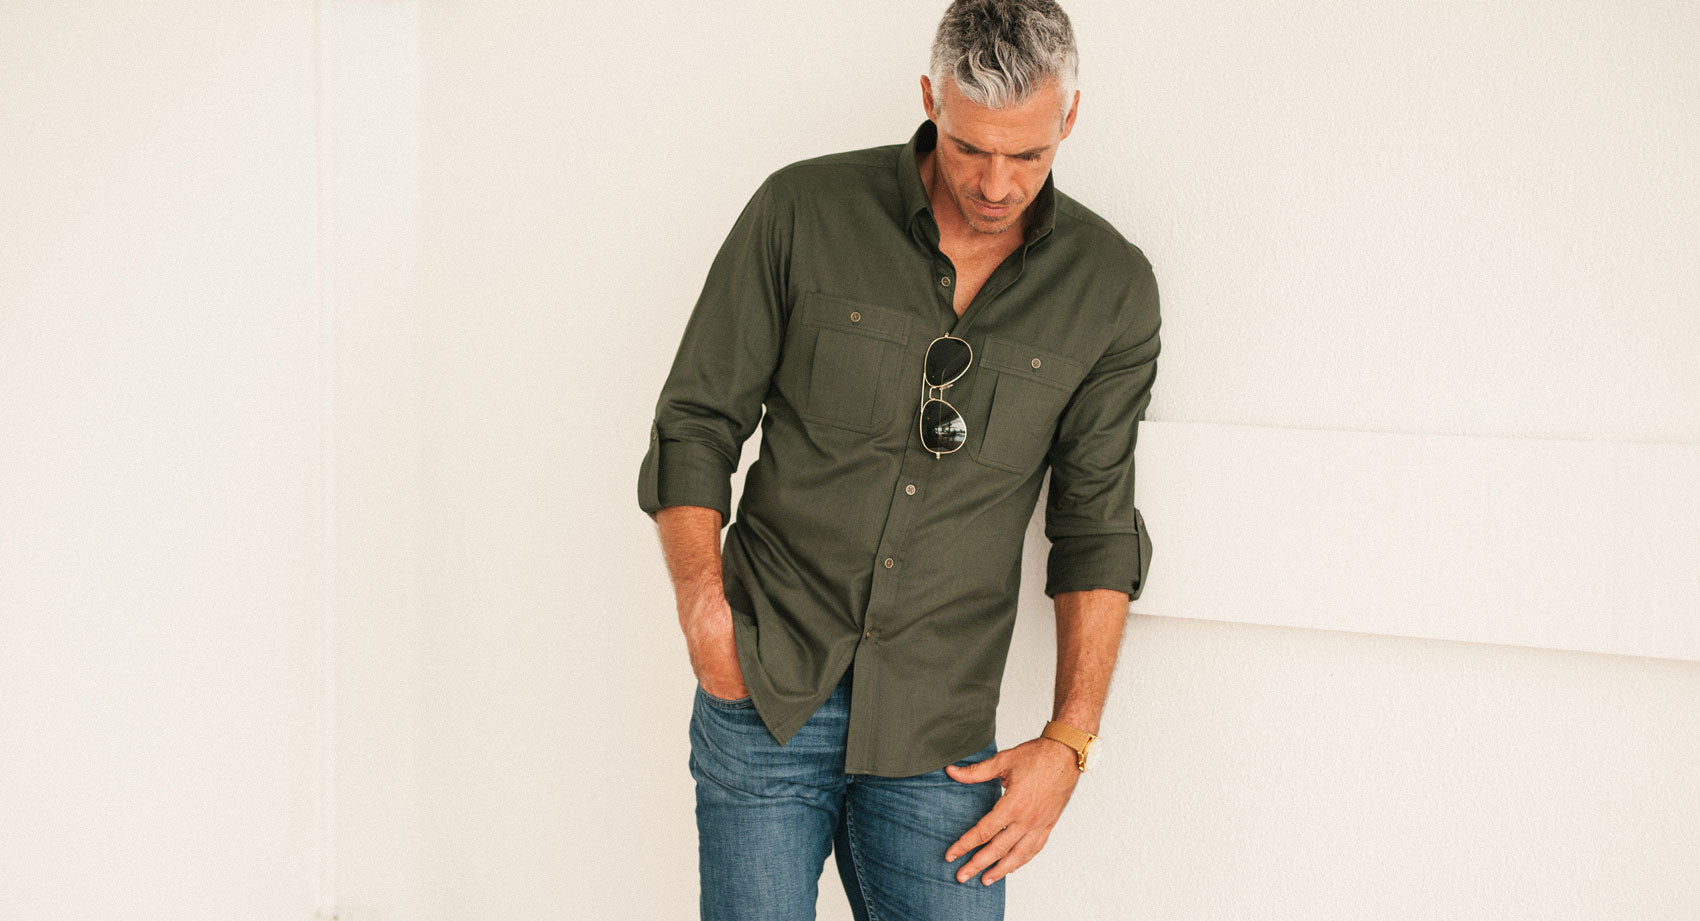 Fixer Men's Utility Shirt in Black